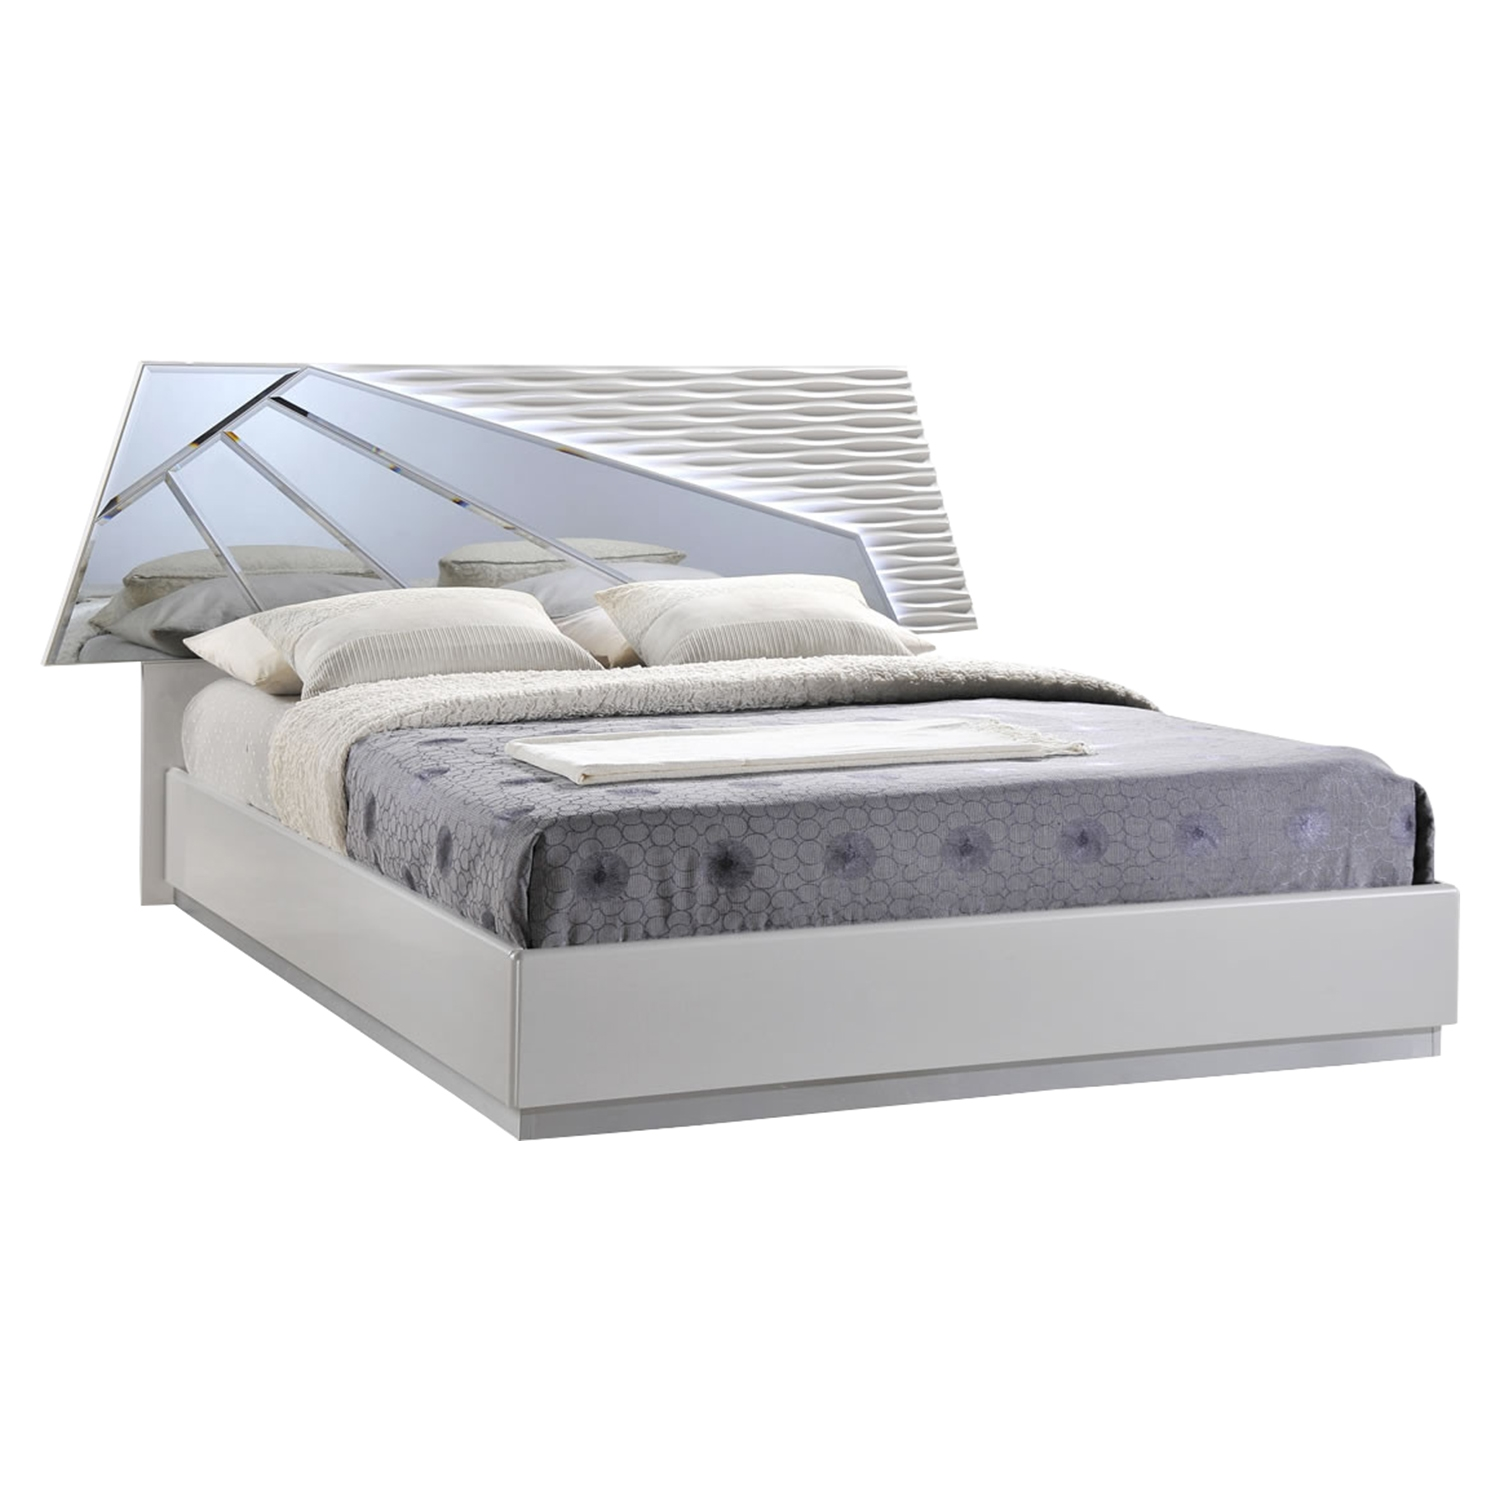 Barcelona Bed in High Gloss Silver Line